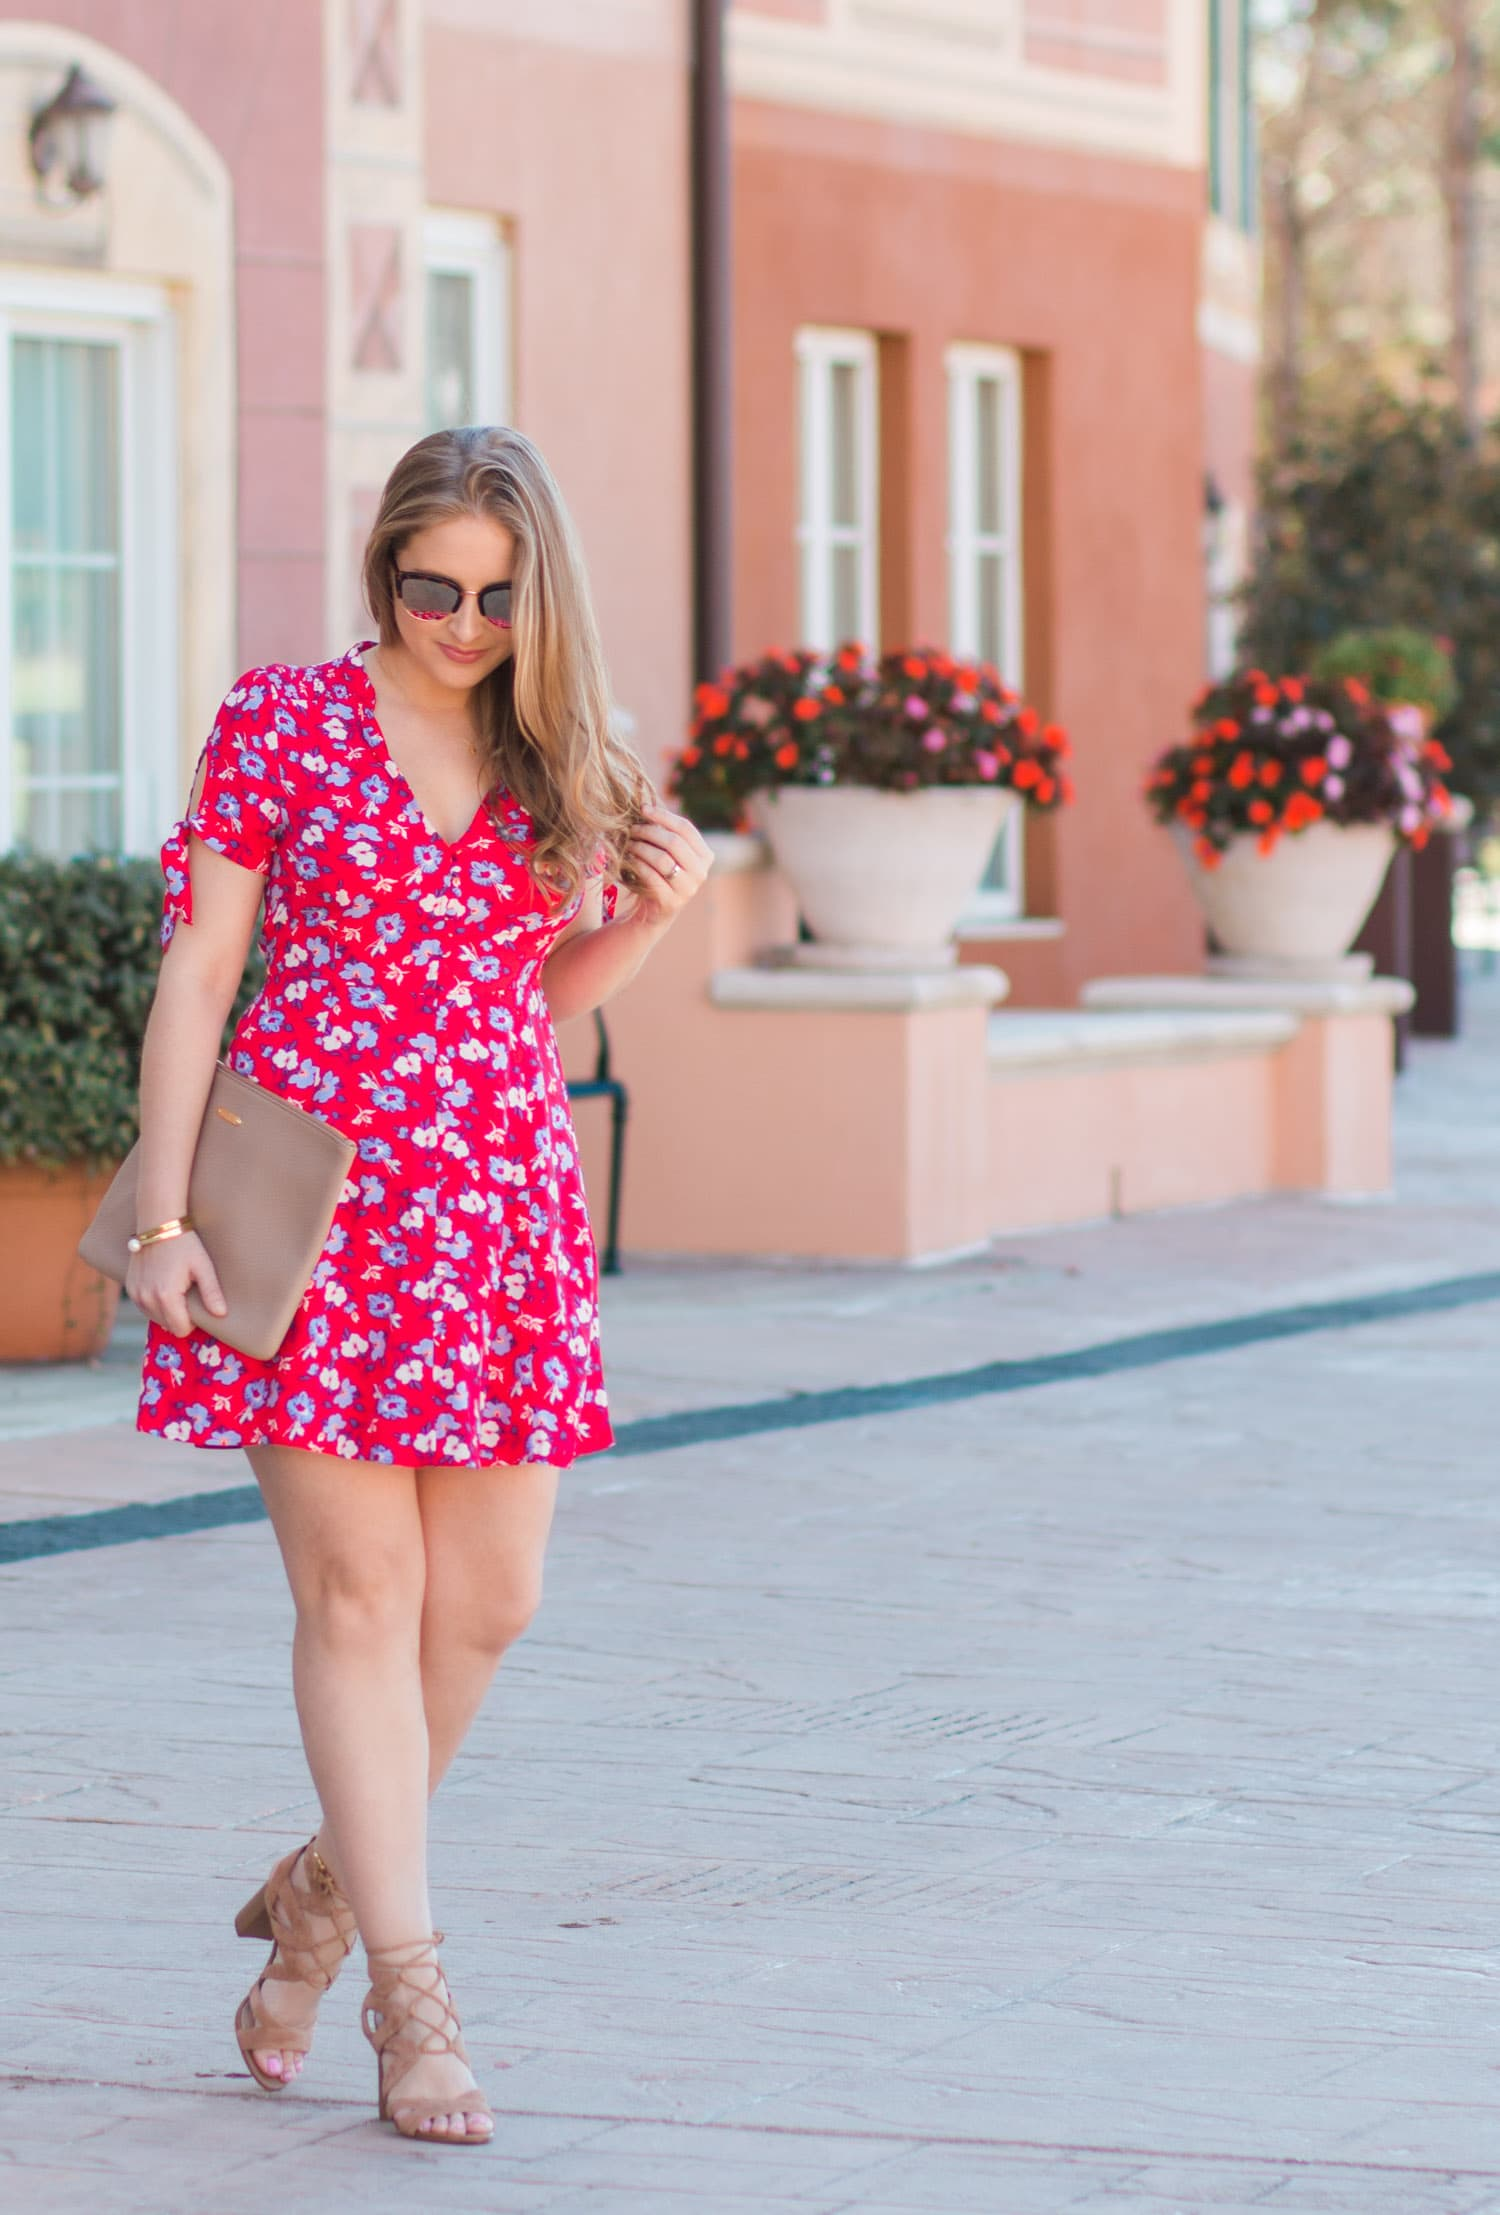 woman walking red floral dress